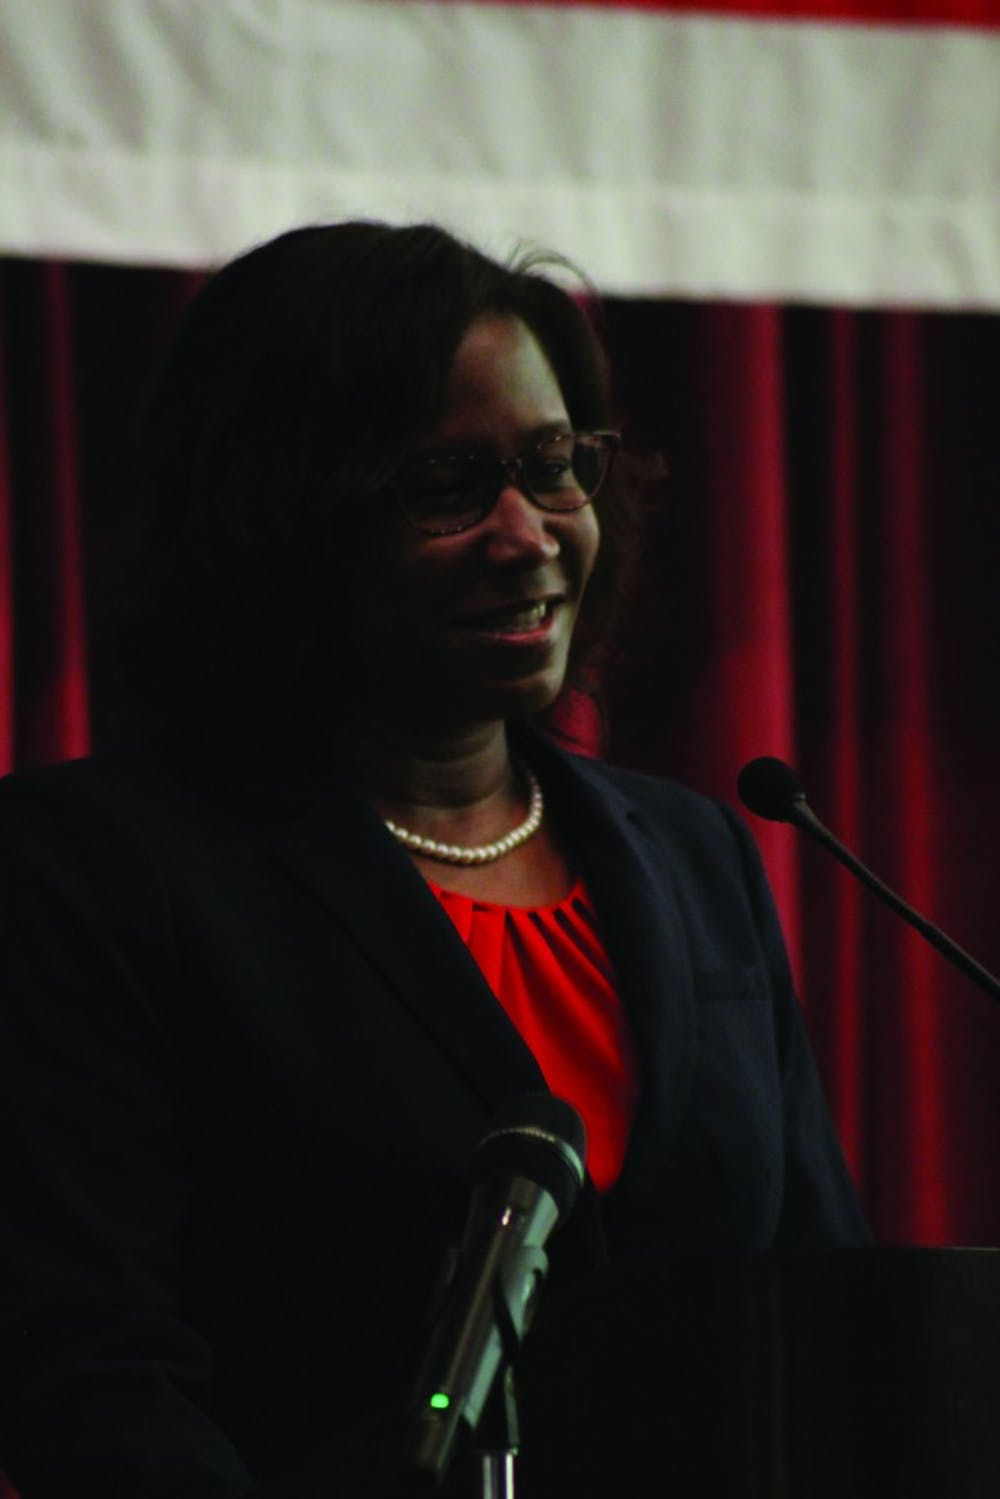 SU president introduces herself, welcomes students to campus